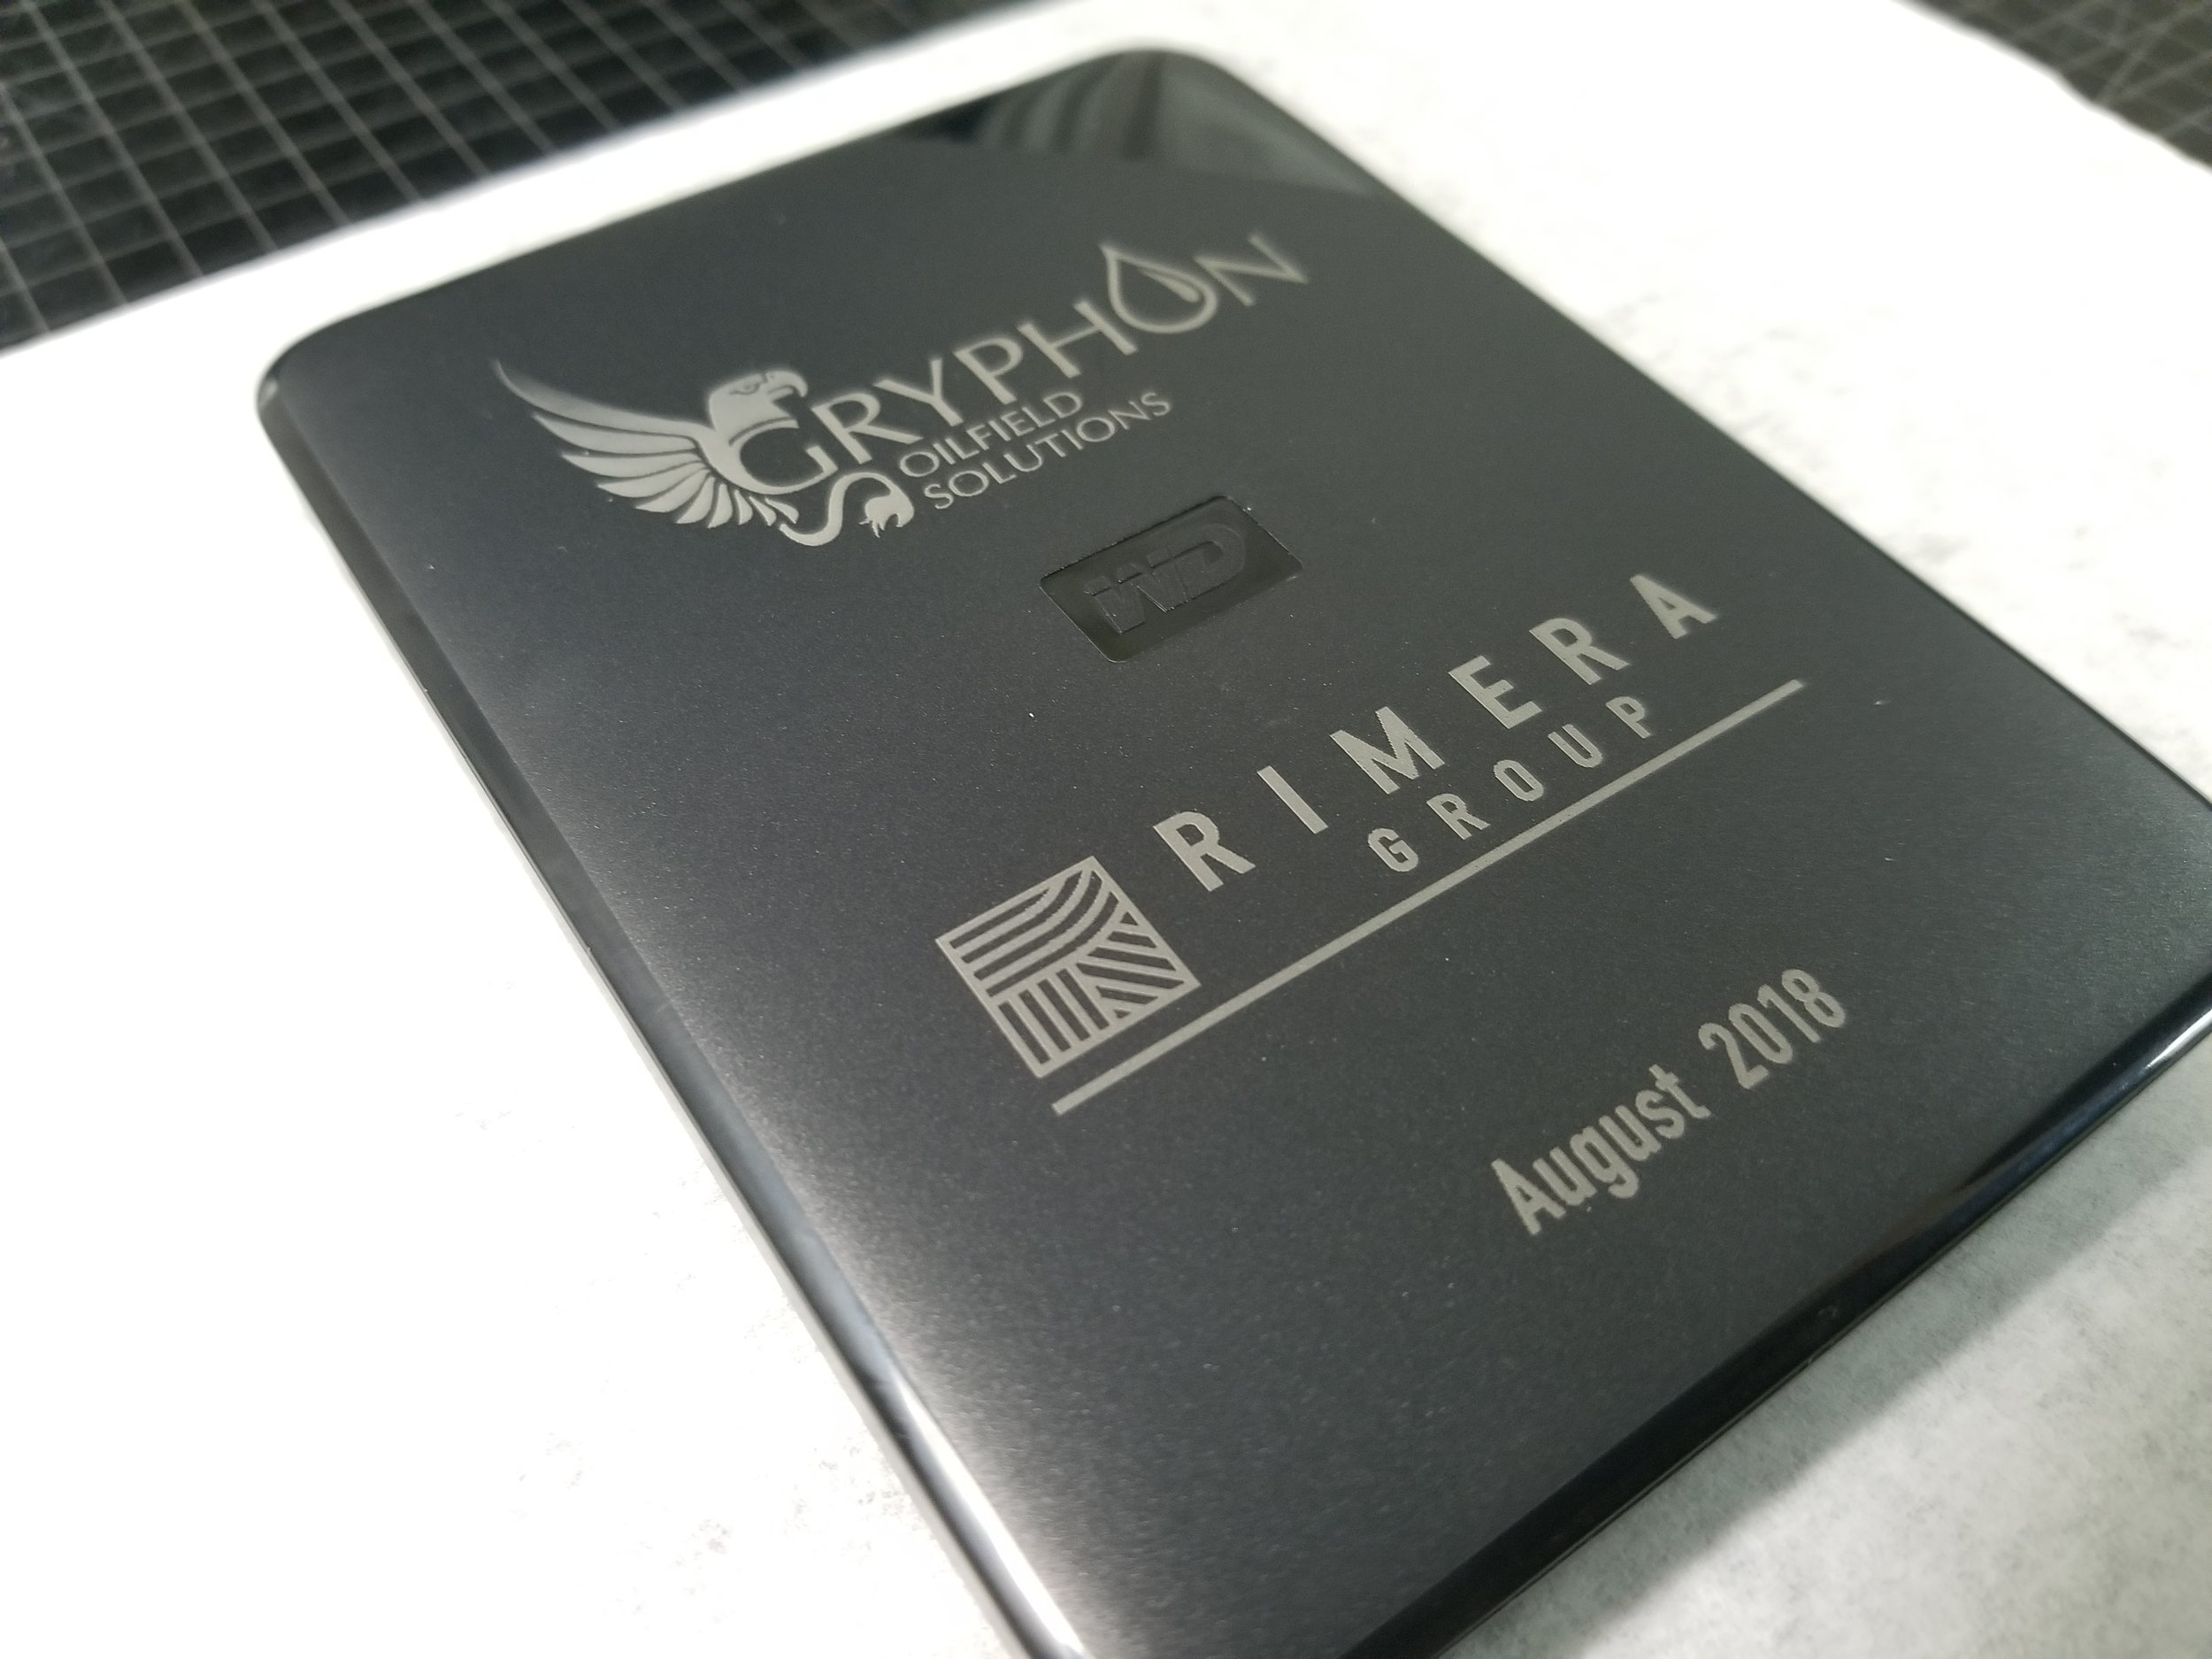 Custom Branded External Hard Drive - Logo Engraved on External Hard Drive - Corporate Identity Projects - Branding Projects from Engrave It Houston